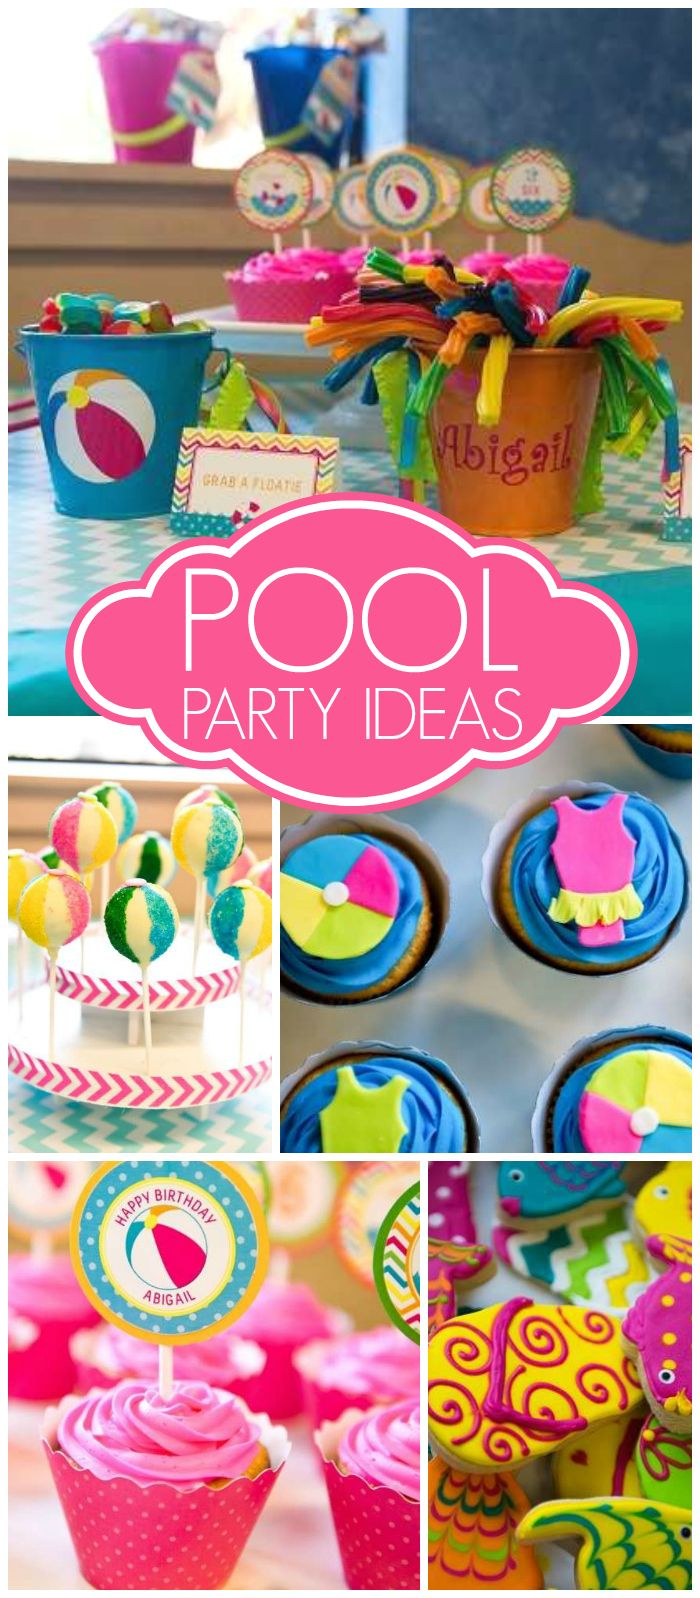 Childrens Pool Party Ideas decorations that will make any pool party awesome cover Love This Bright And Cheery Hot Pink And Turquoise Pool Party See More Party Ideas